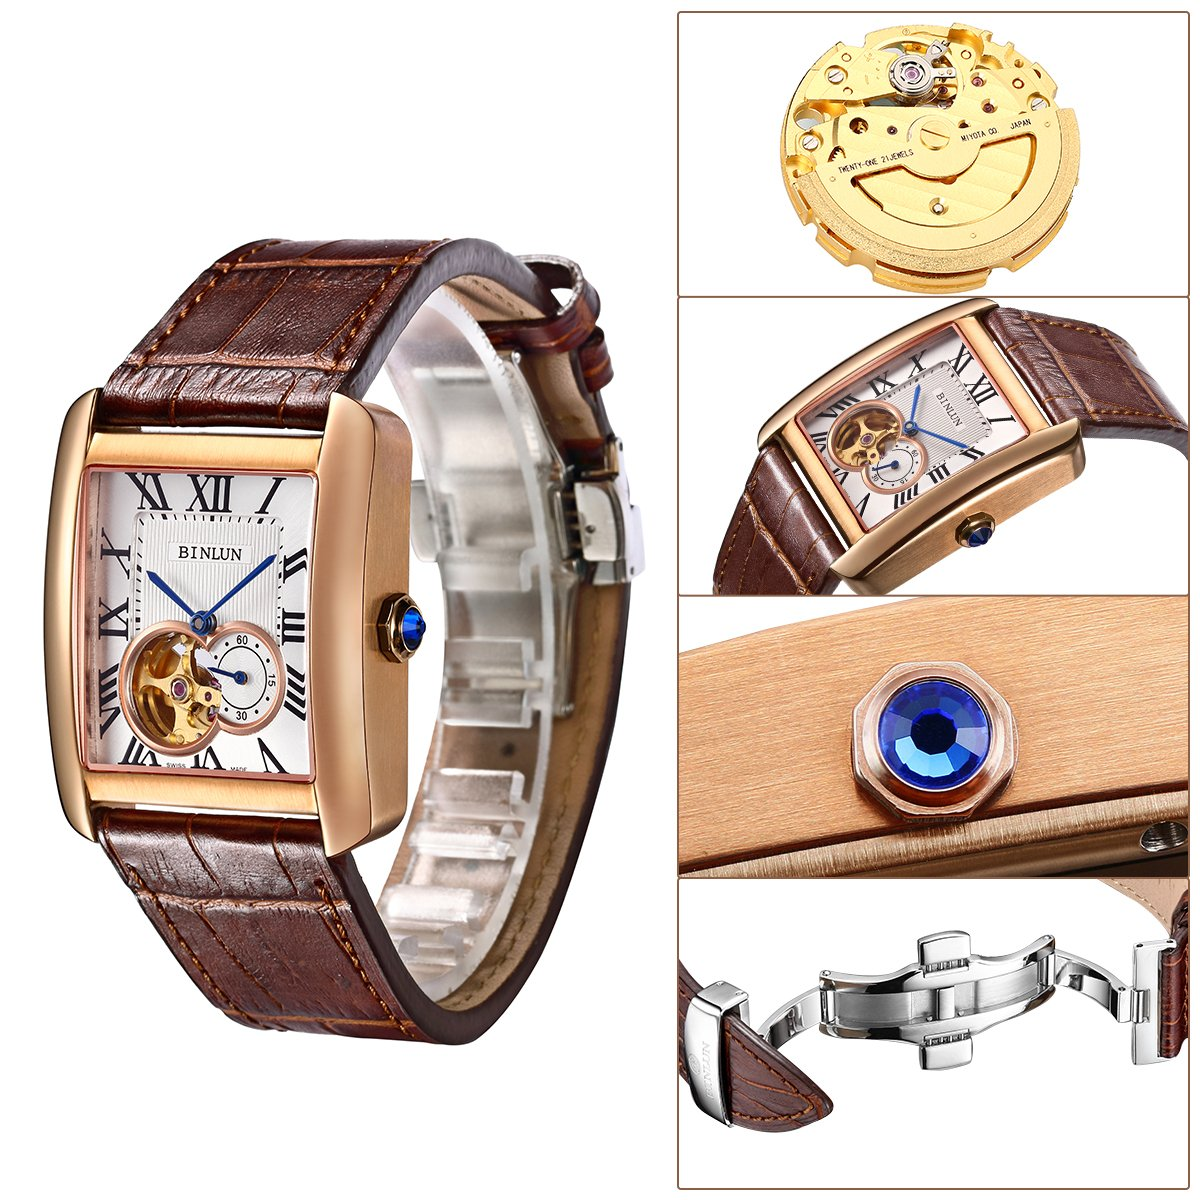 Binlun Men's Rectangle Shape Gold-Plating Business Mechanical Self-Winding Watch Brown Leather Band by BINLUN (Image #1)